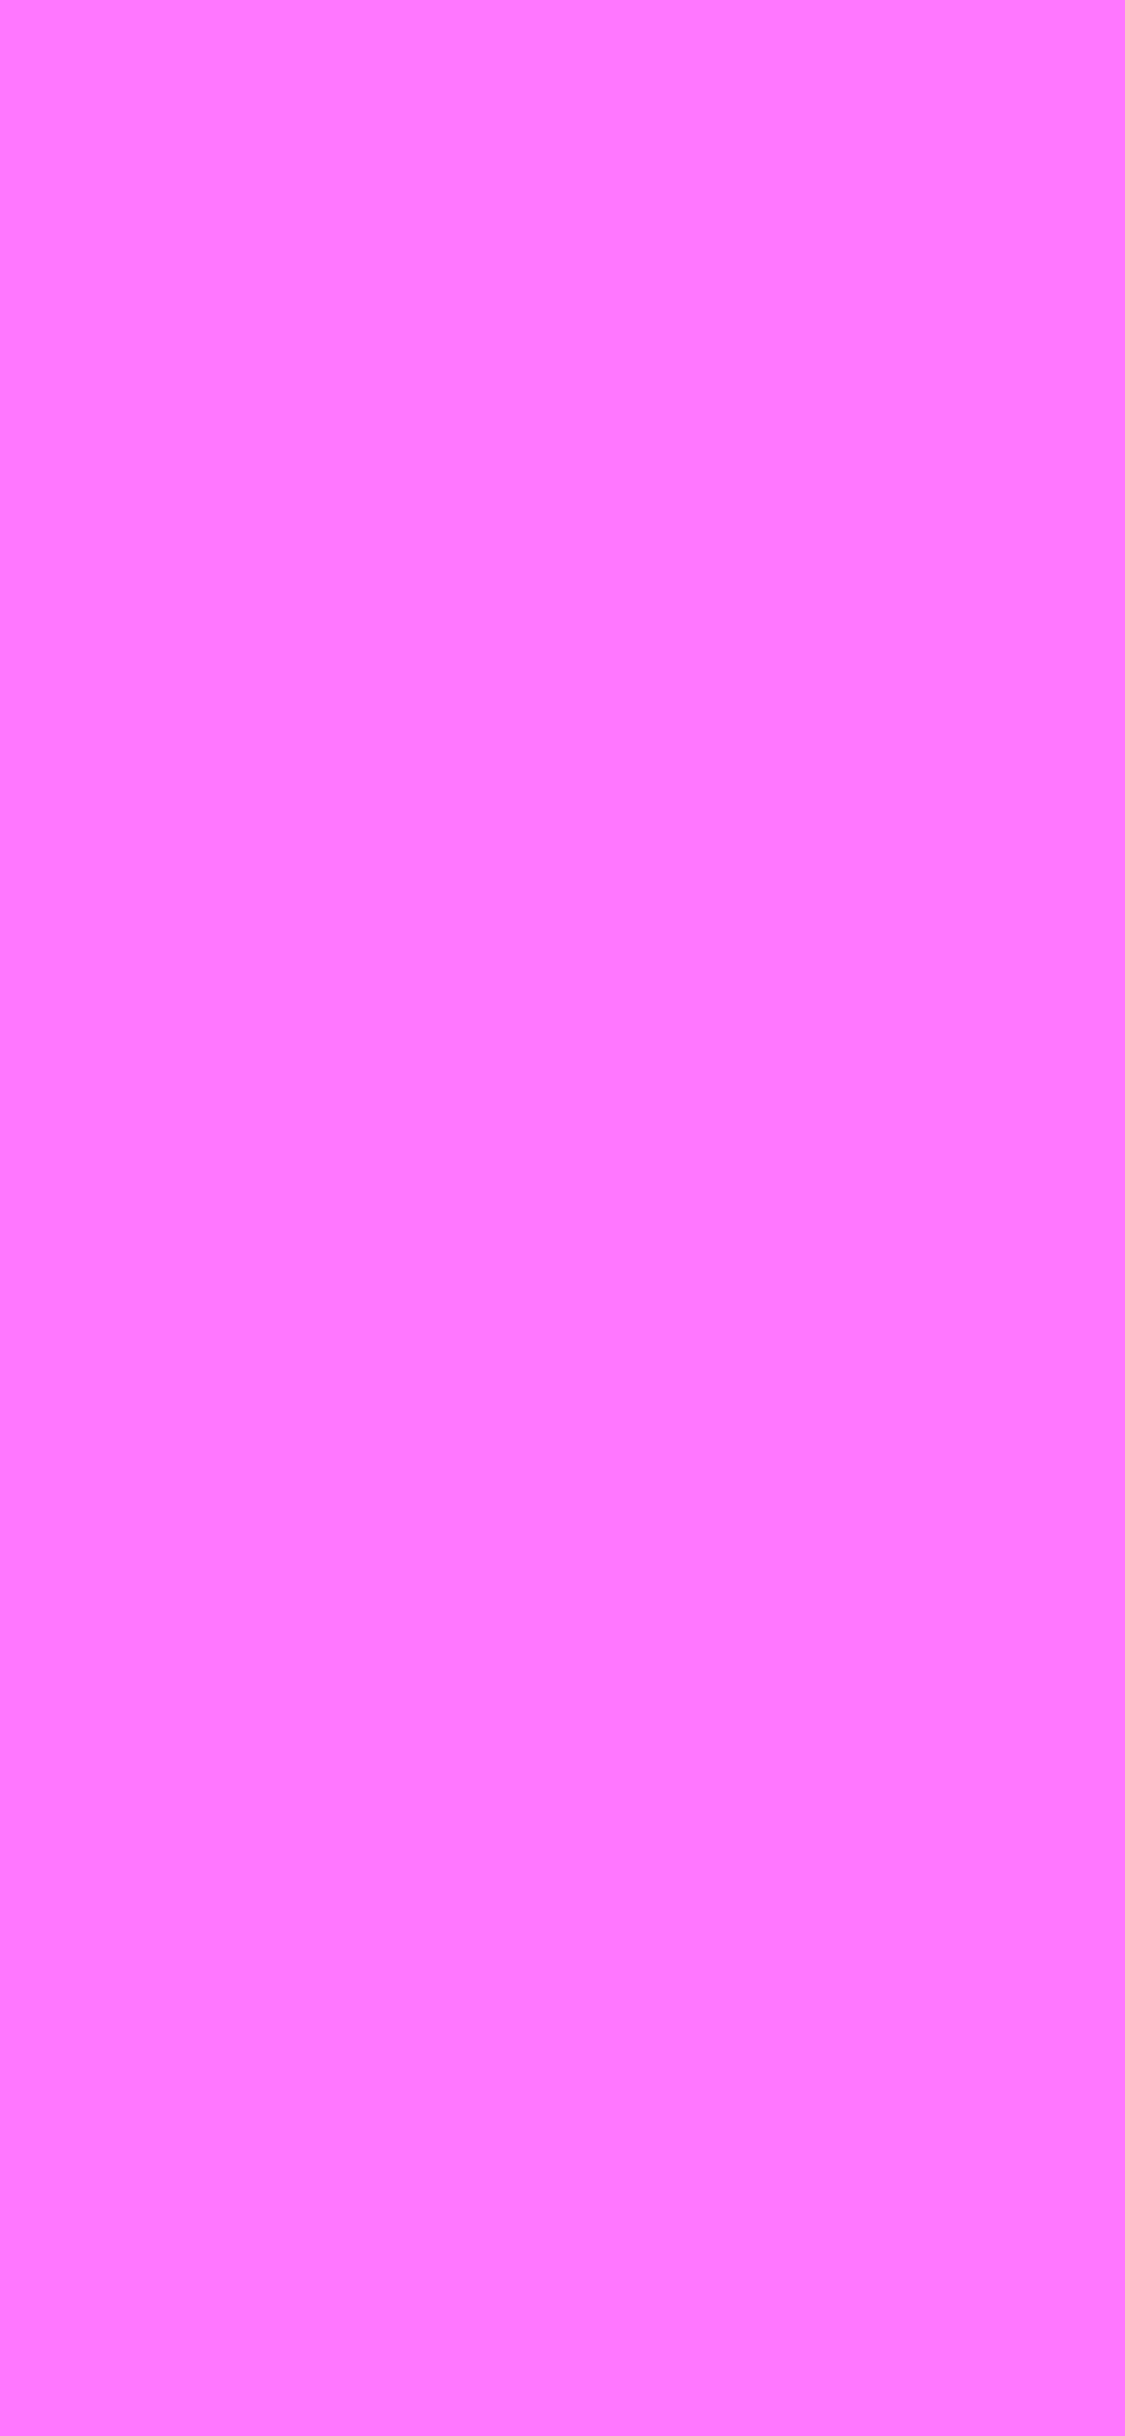 1125x2436 Fuchsia Pink Solid Color Background